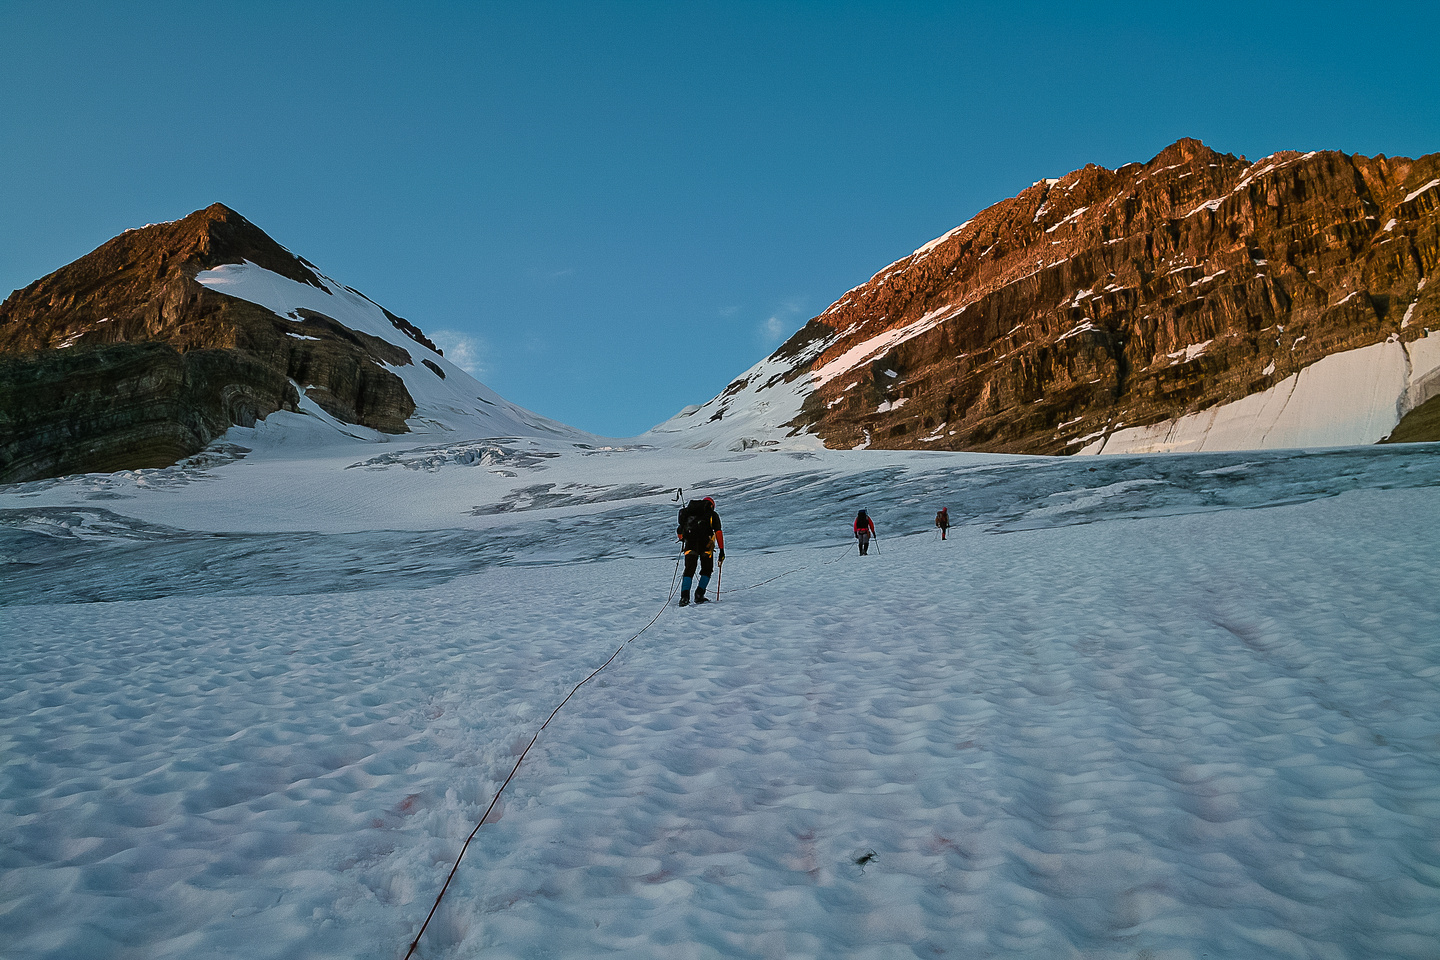 Early morning light as we head up the glacier - Vice President on the left, President on the right.